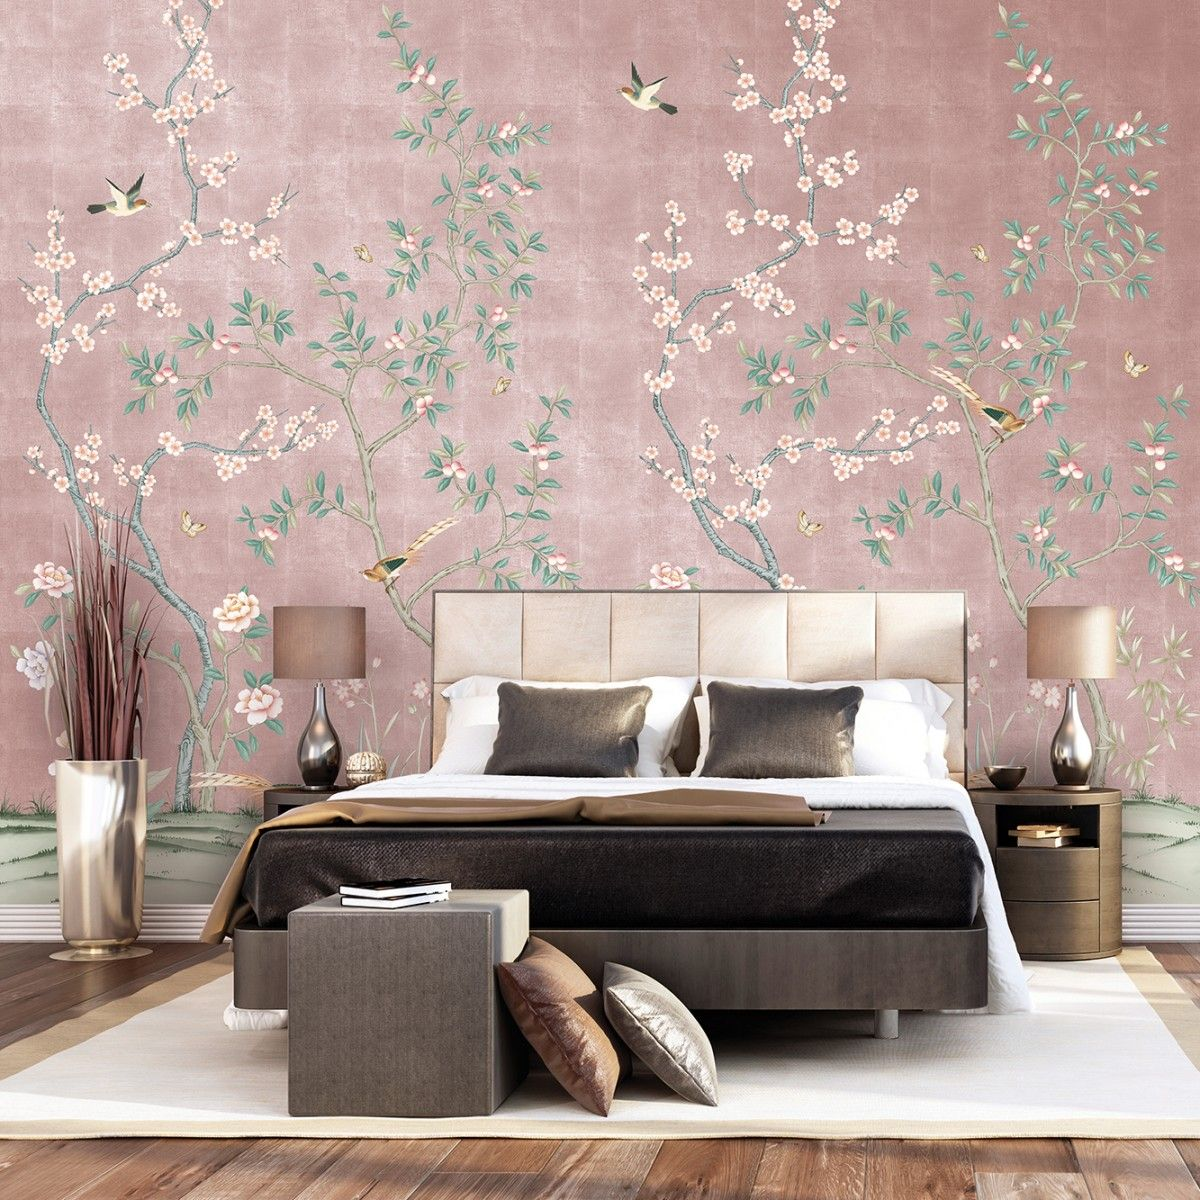 Chinoiserie Garden Metallic Rose Gold Tempaper Designs